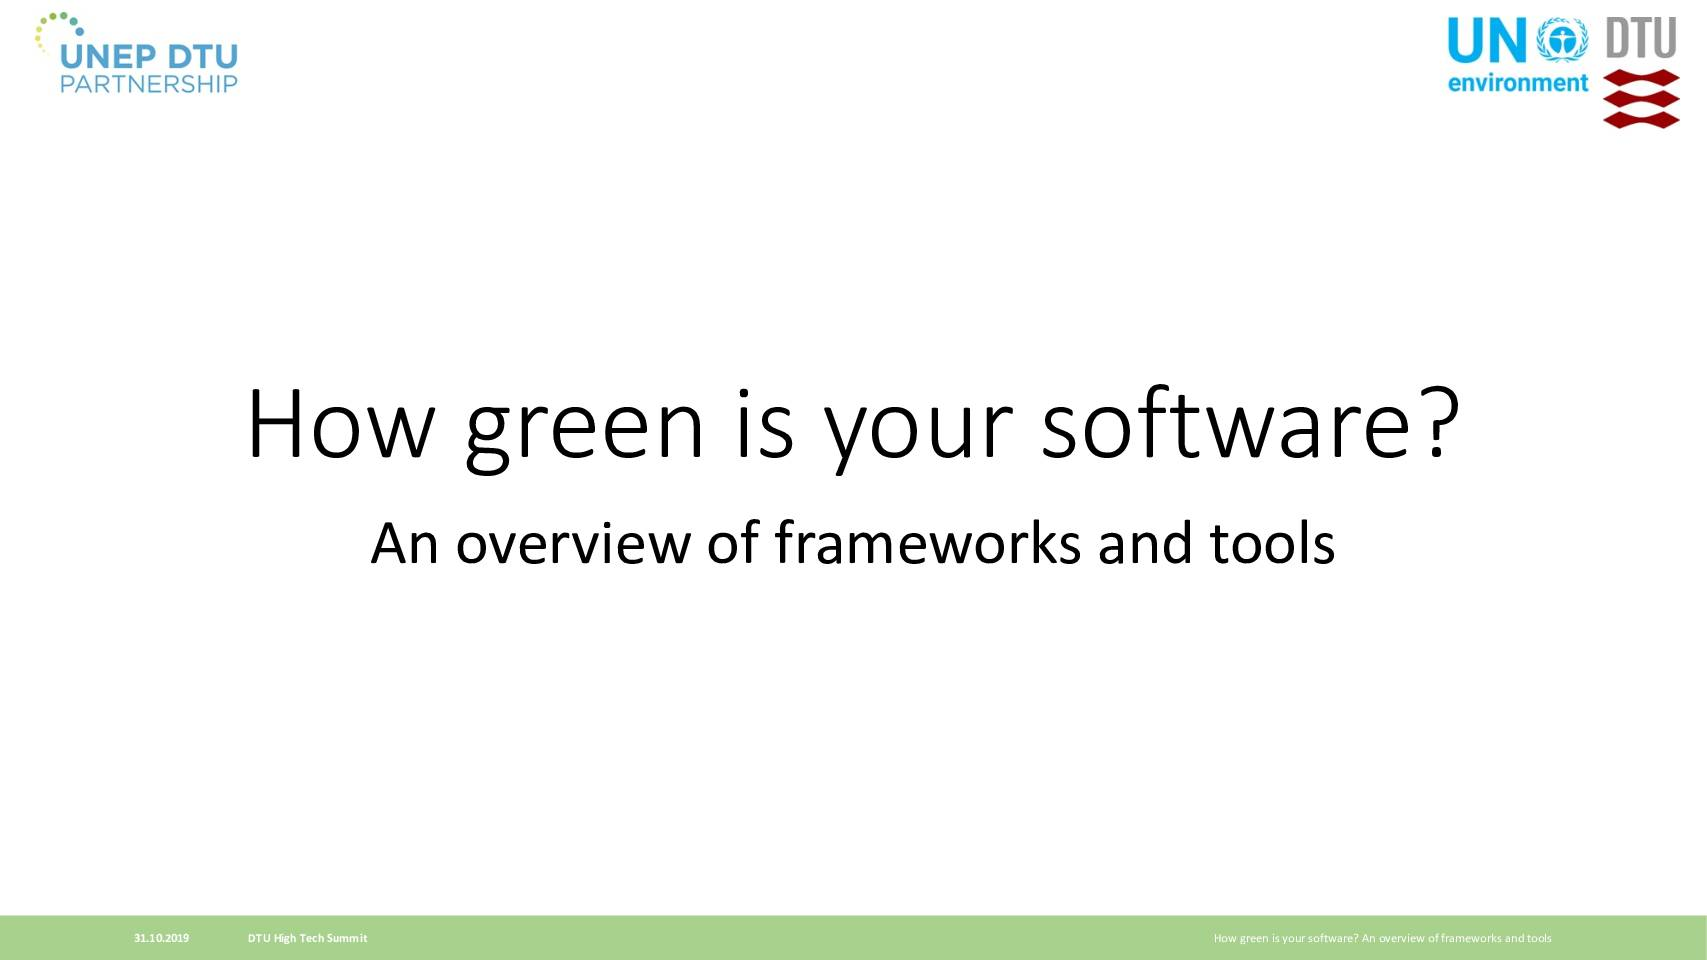 How green is your software? An overview of frameworks and tools